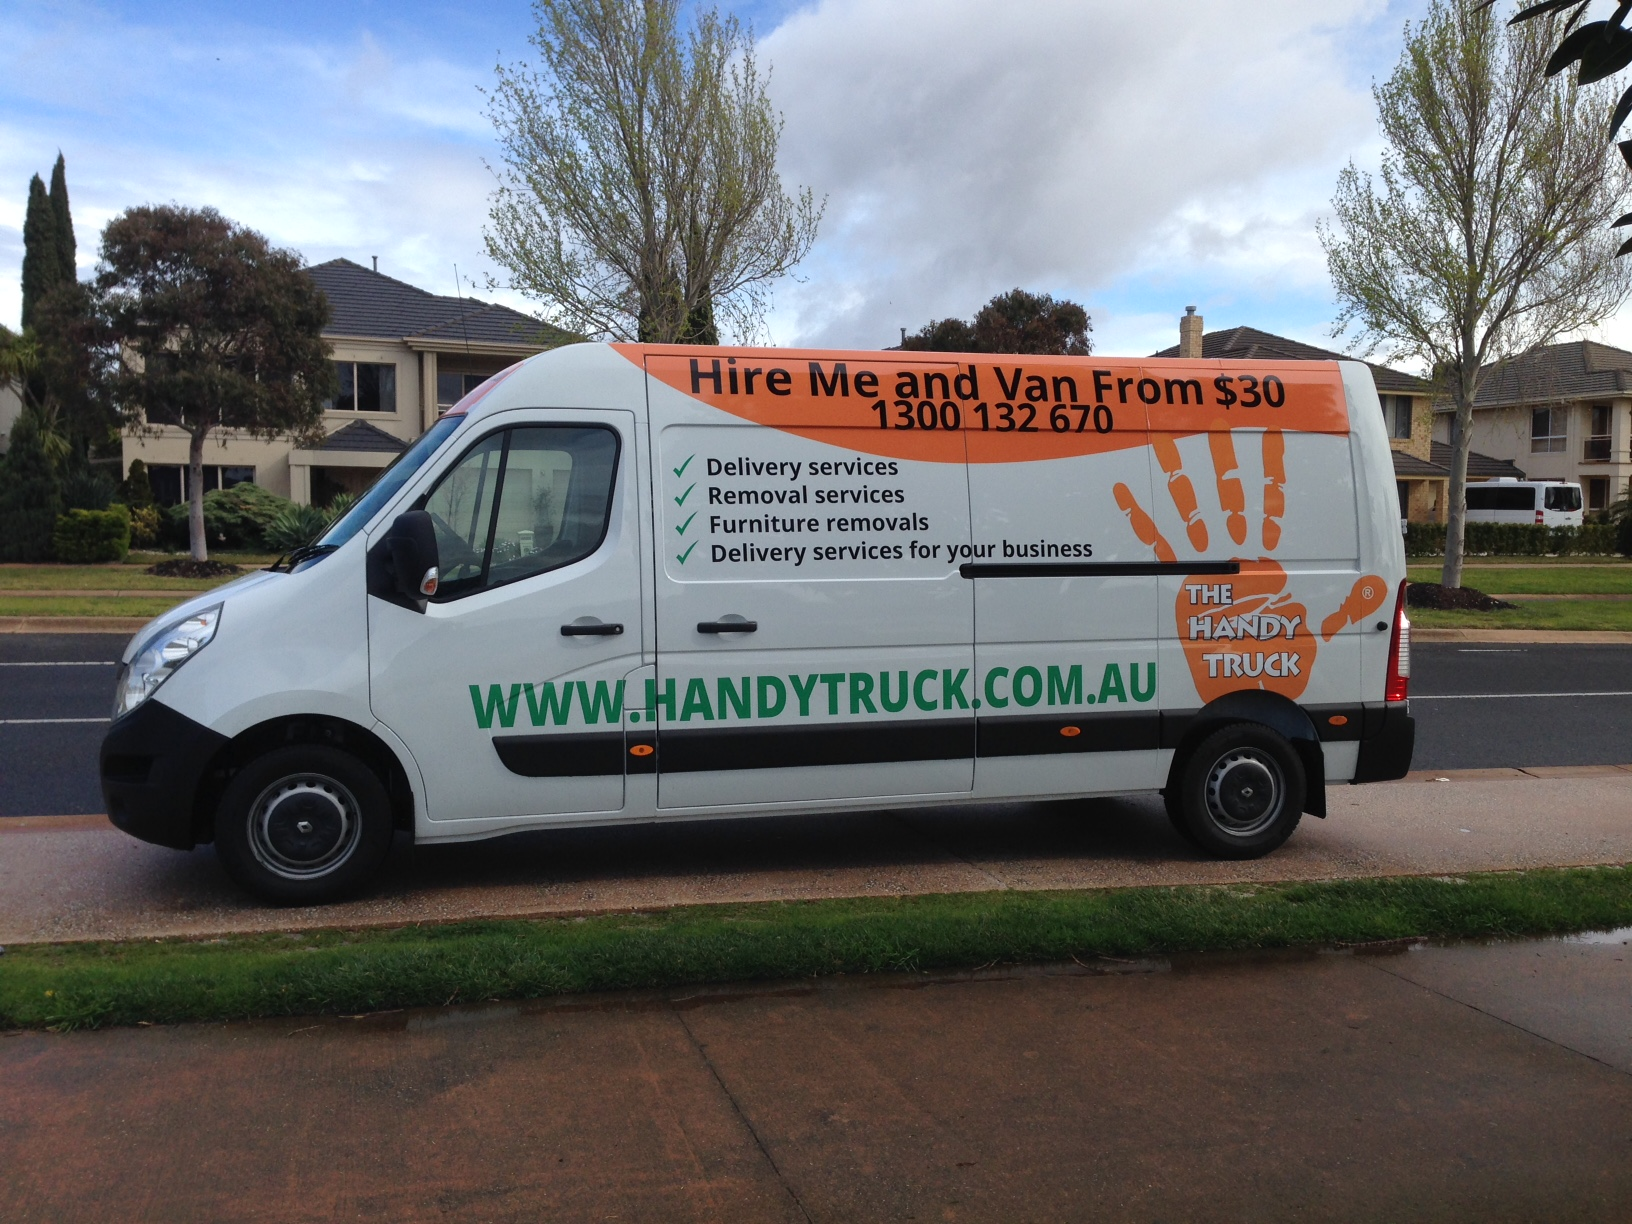 Your delivery and removalist service in Geelong